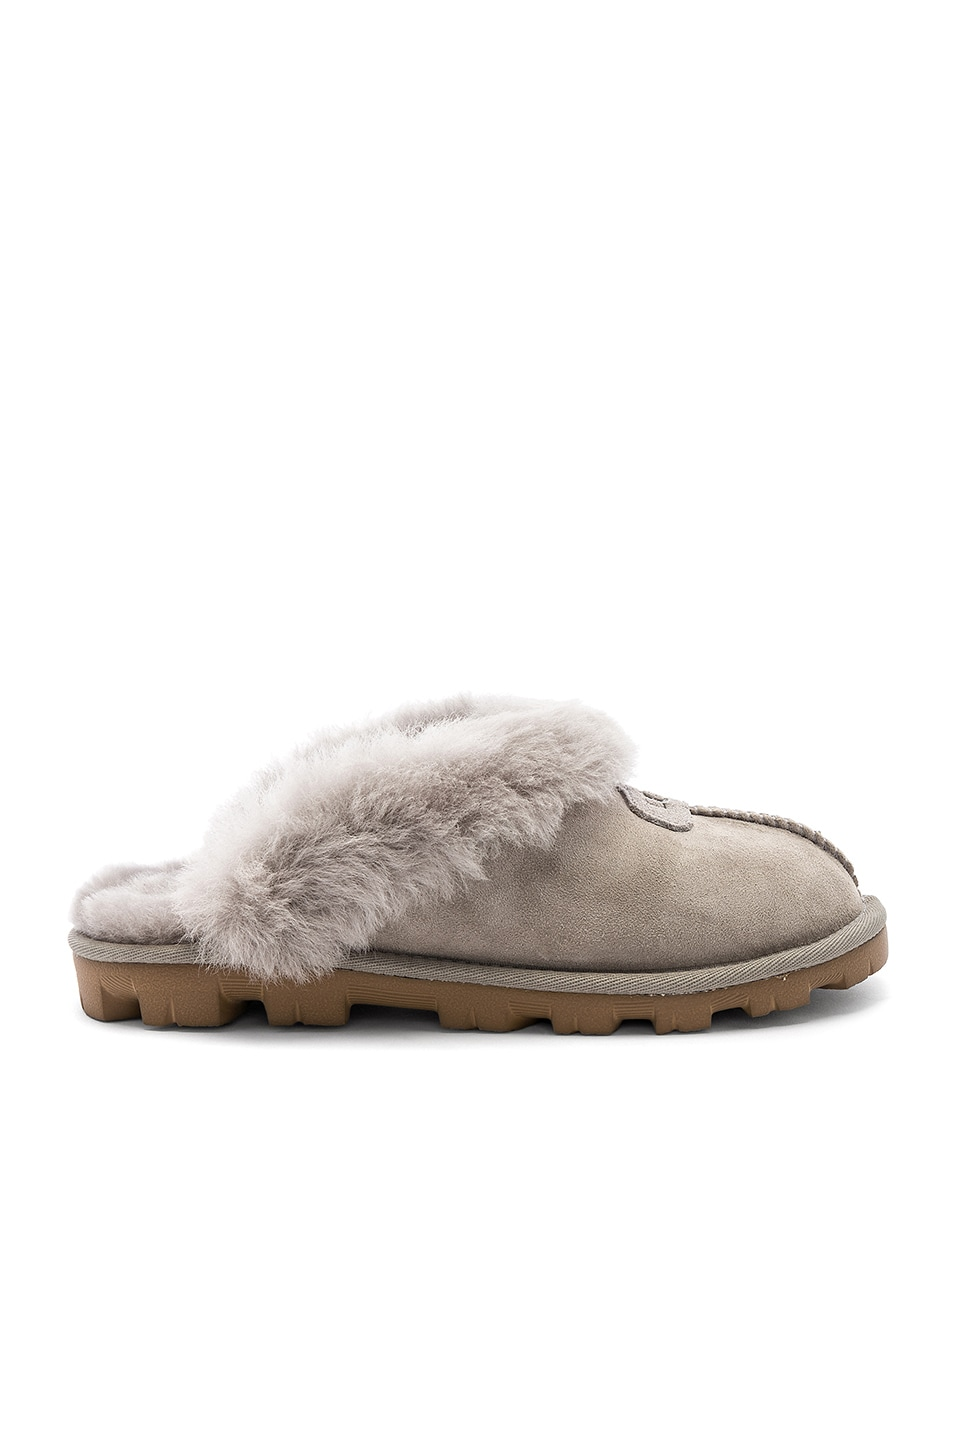 49b581a8cbb UGG Coquette Slipper in Seal | REVOLVE